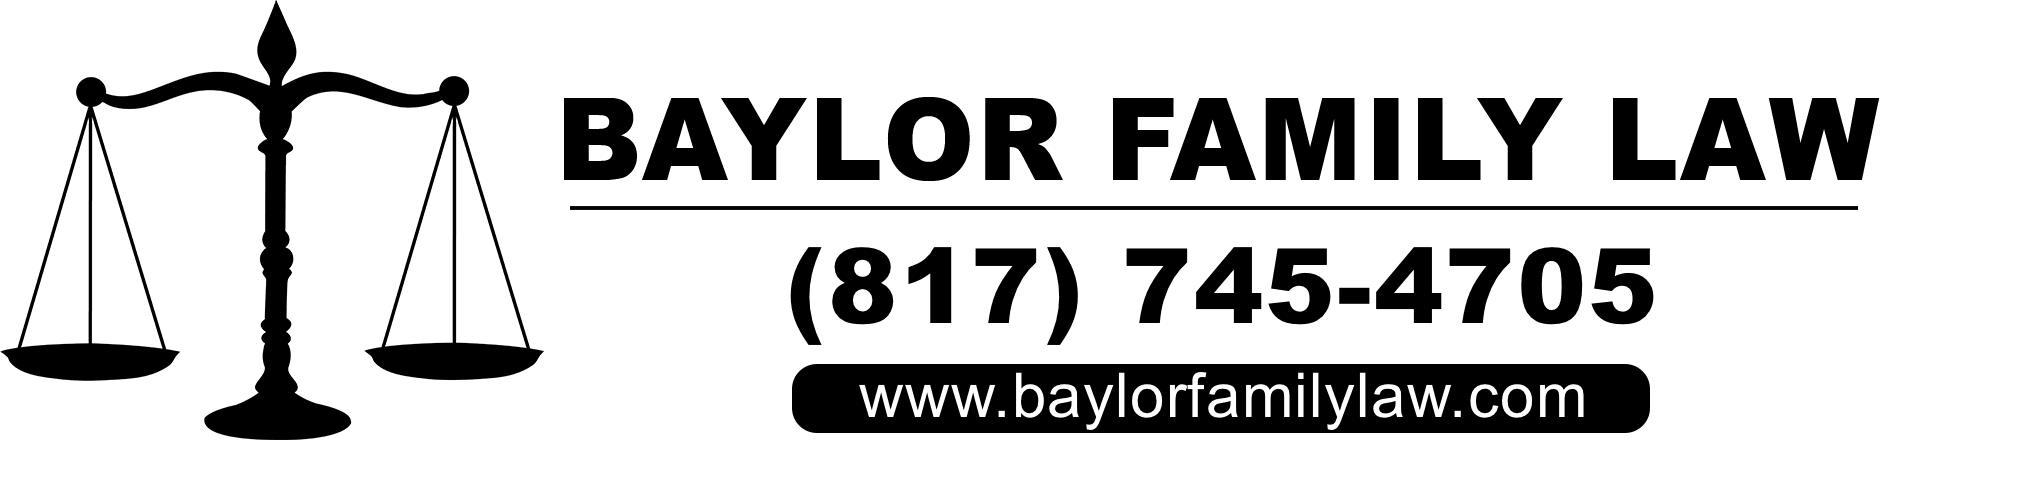 Baylor Family Law